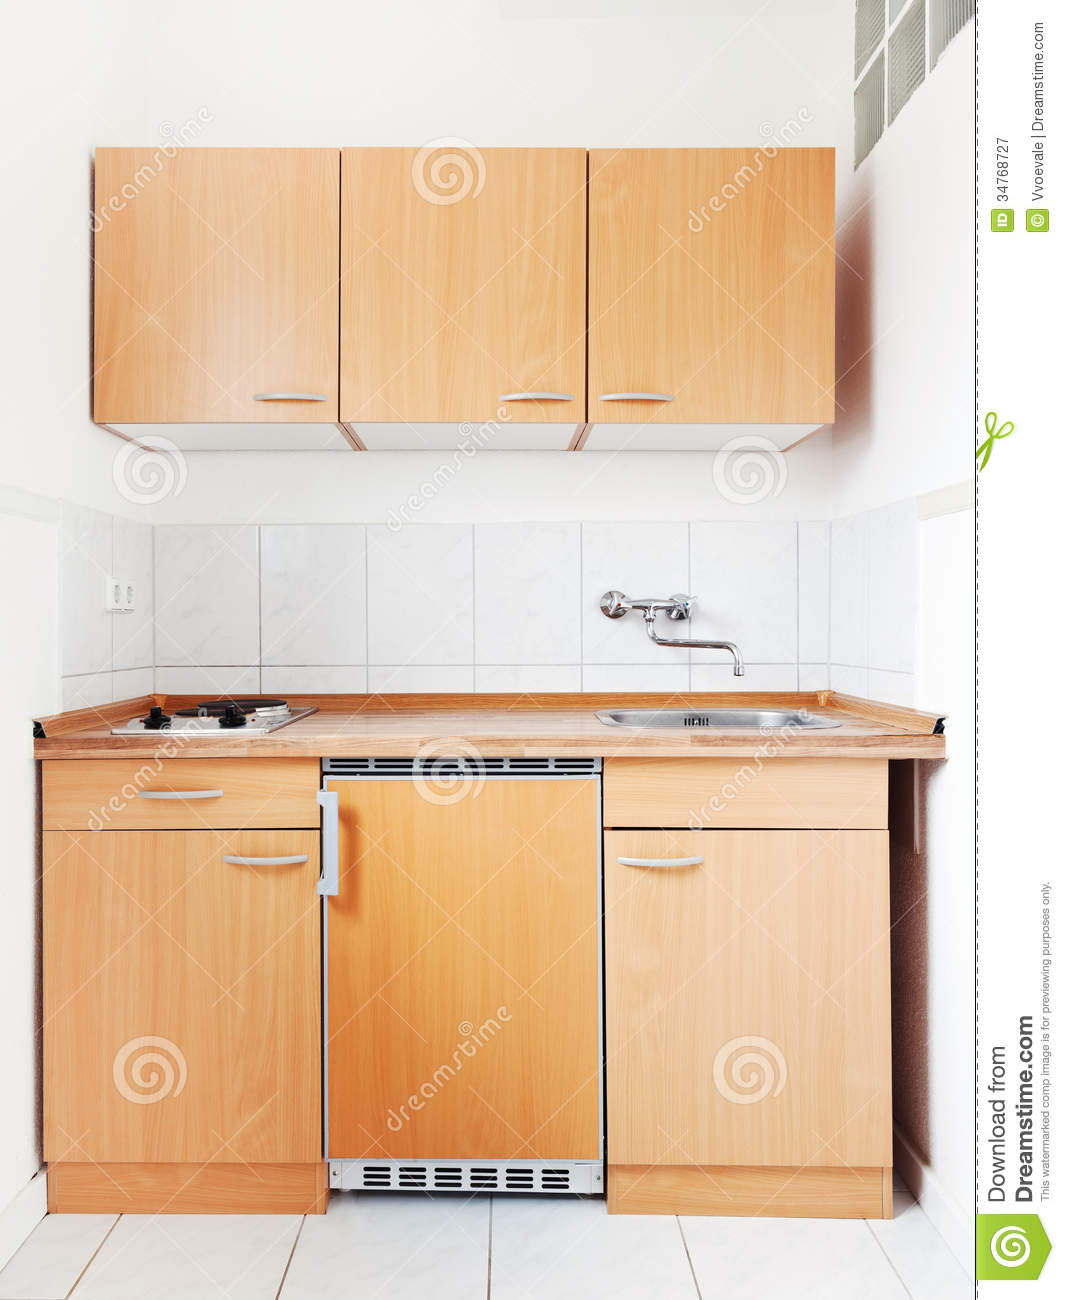 White Kitchen With Furniture Set Stock Image Image Of Fridge Poor